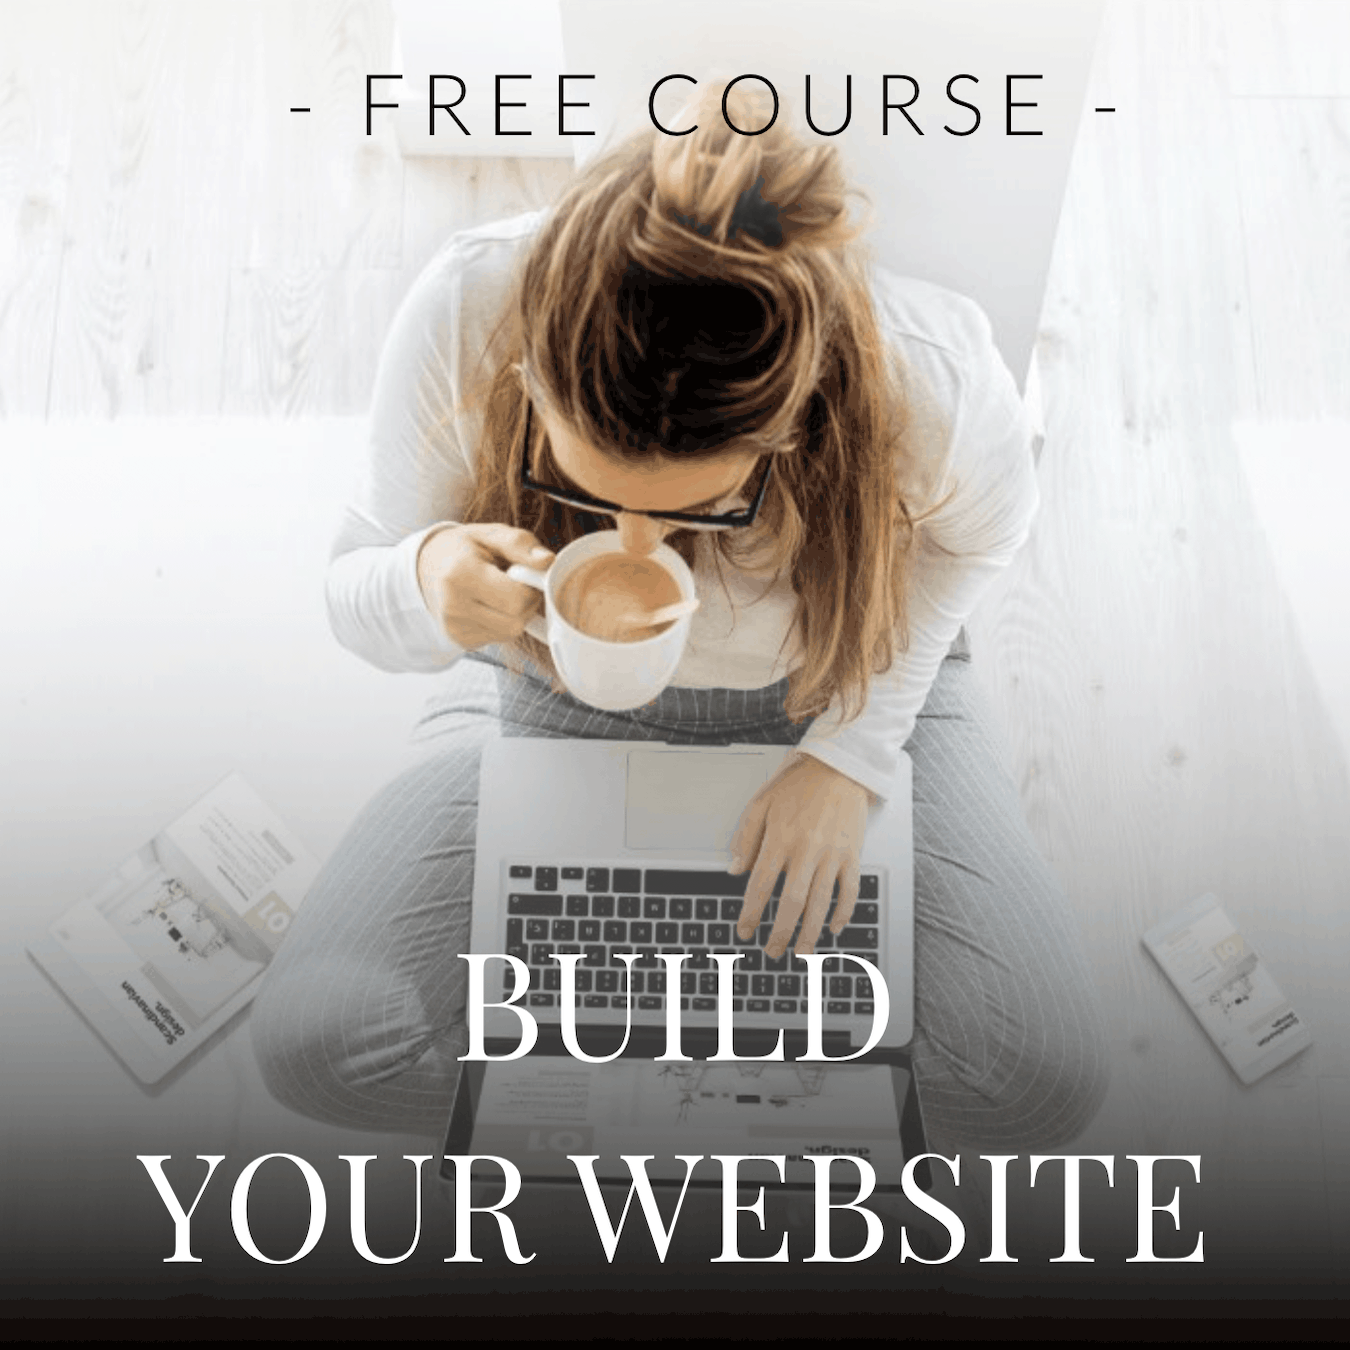 Build Your Website - Free Course